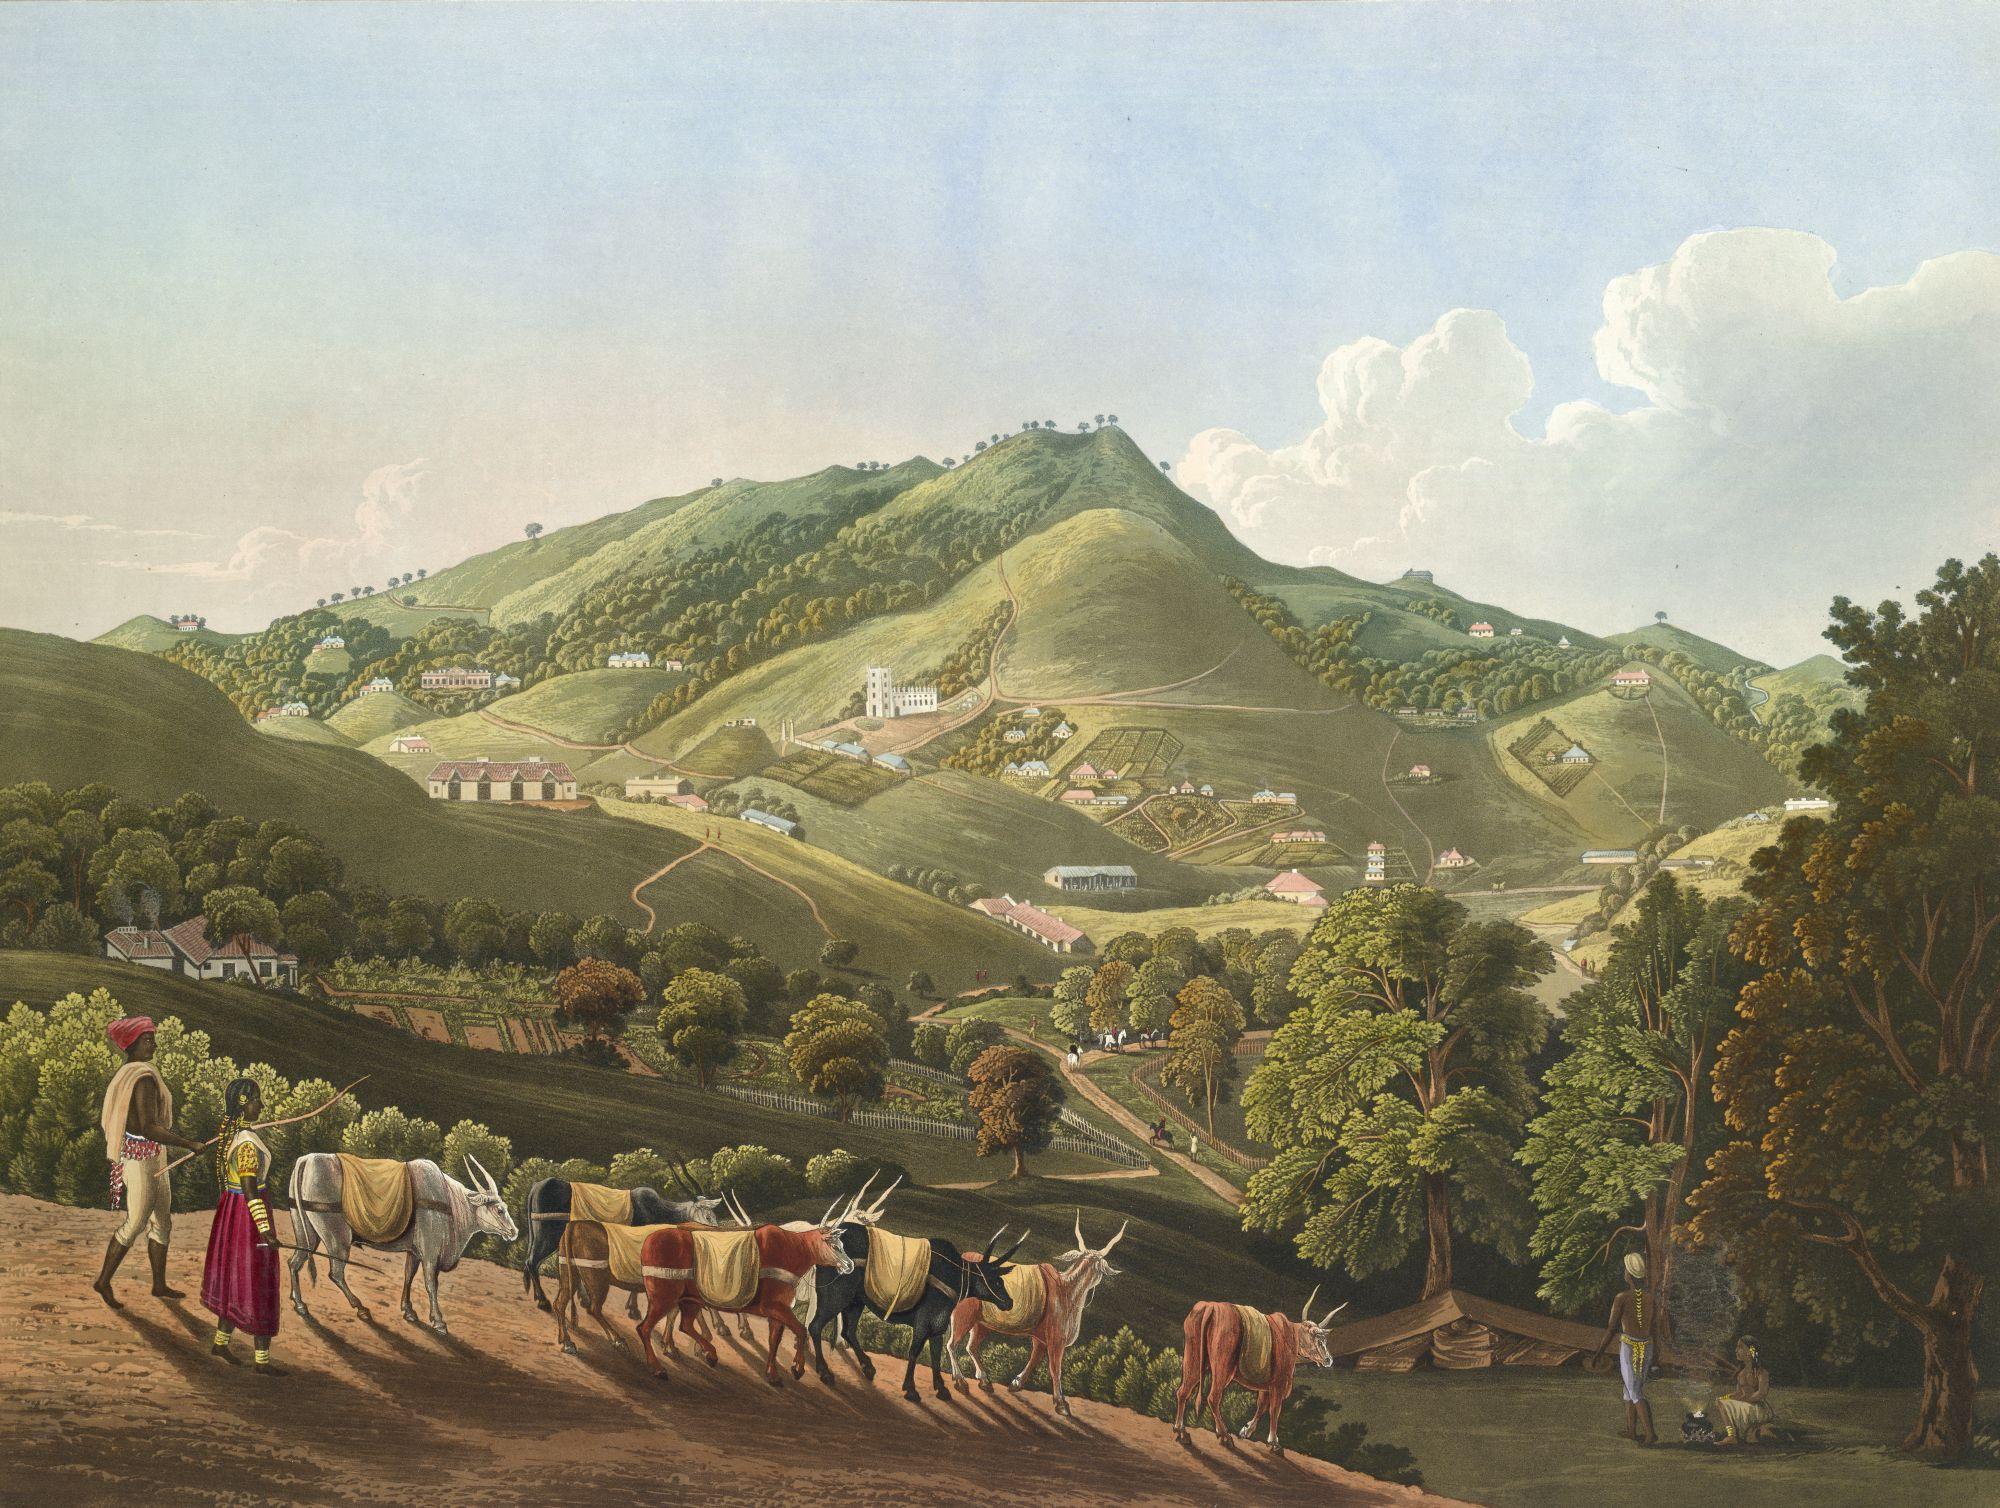 A General View in Ootacamund, by Robert Havell after Richard Barron.